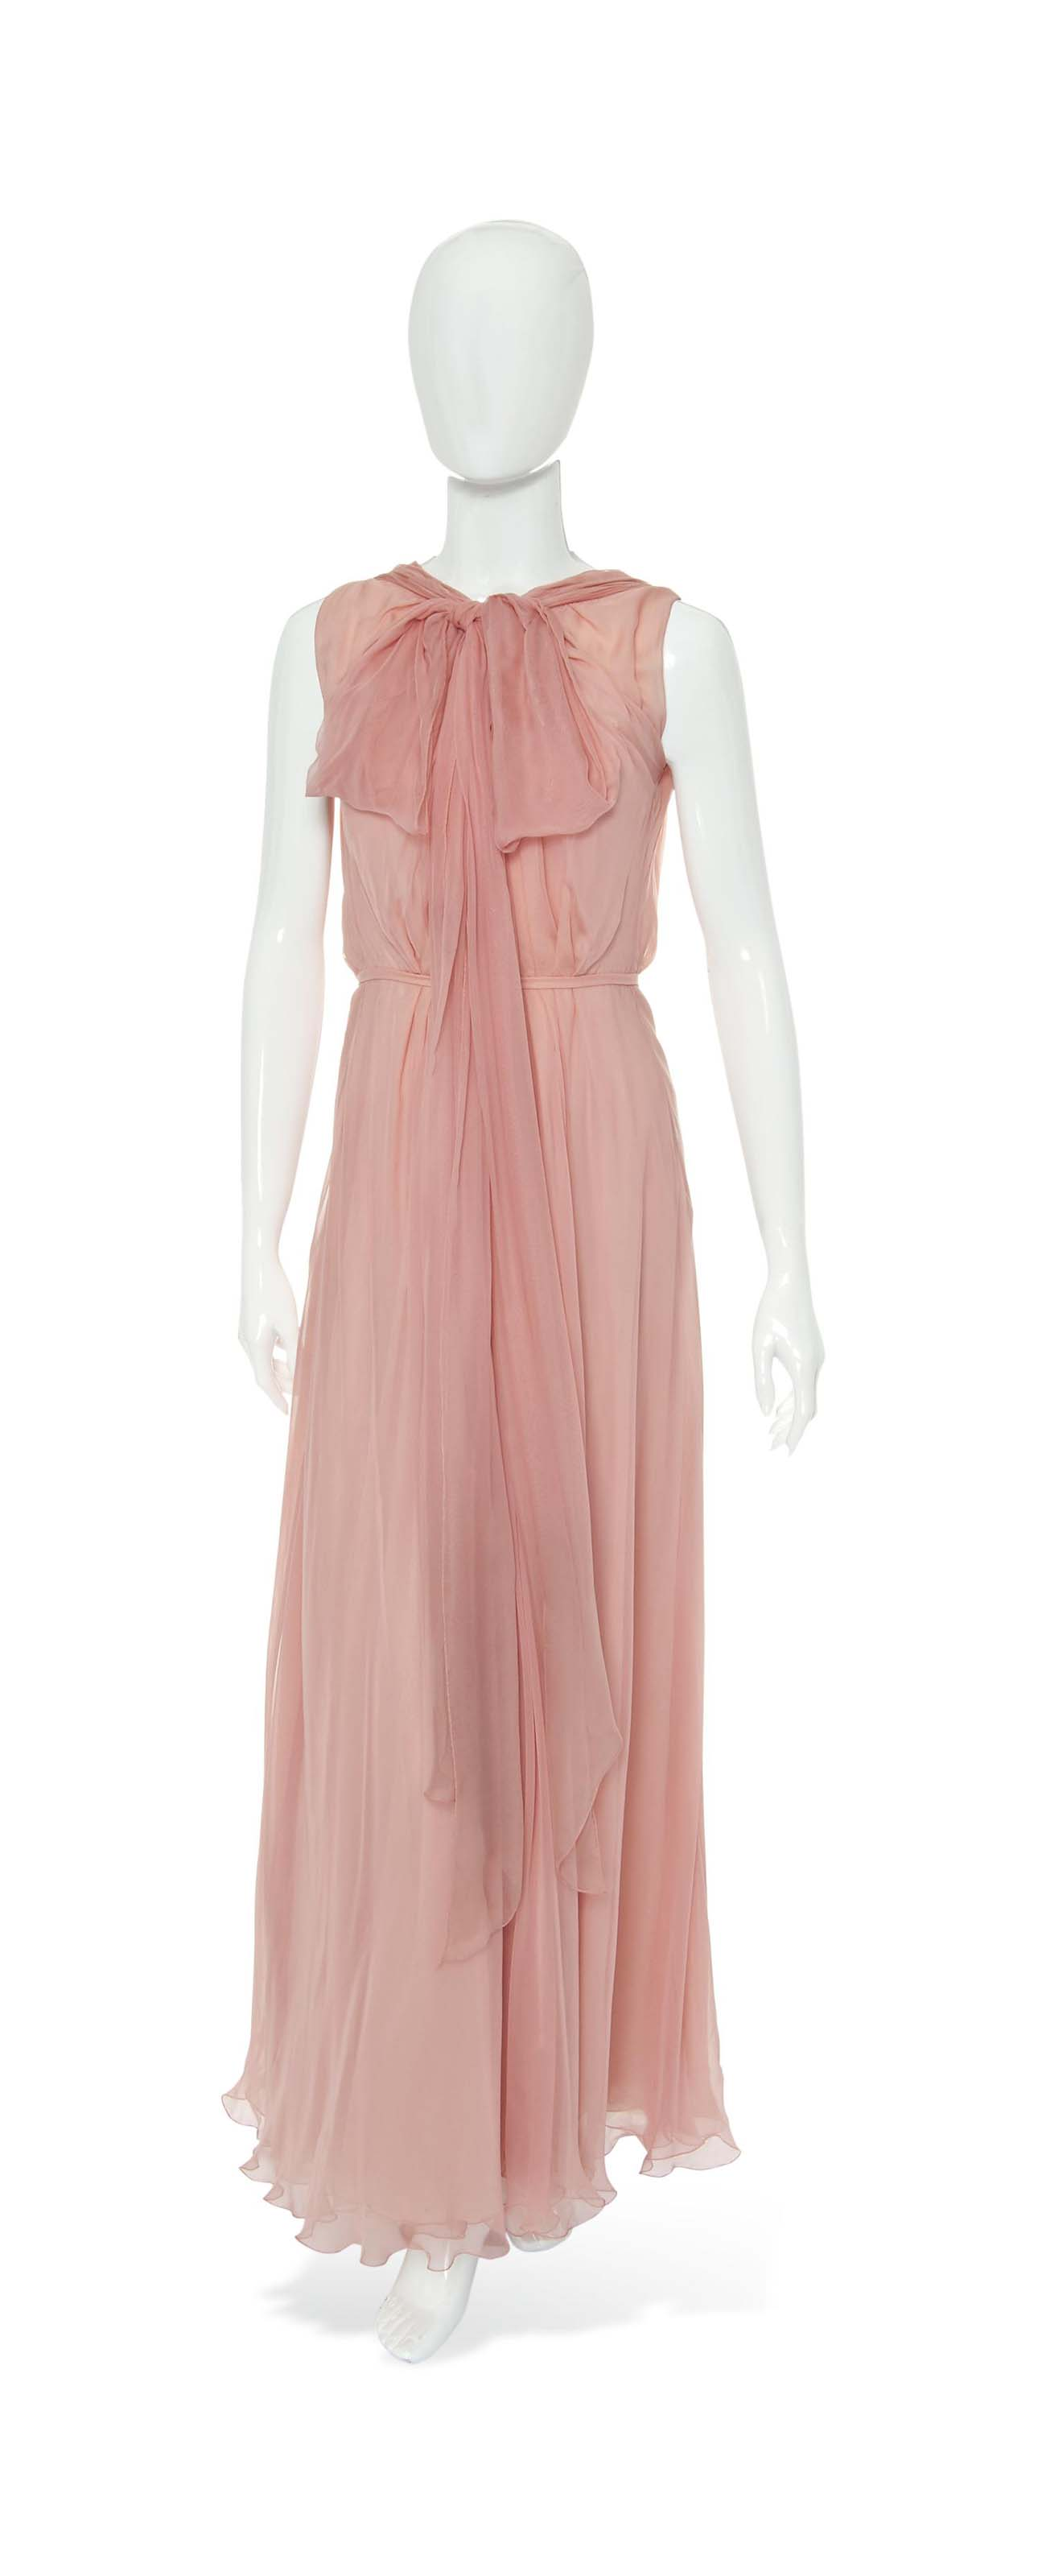 A CHANEL PINK CHIFFON EVENING GOWN | 1975 | 1970s, dress | Christie\'s